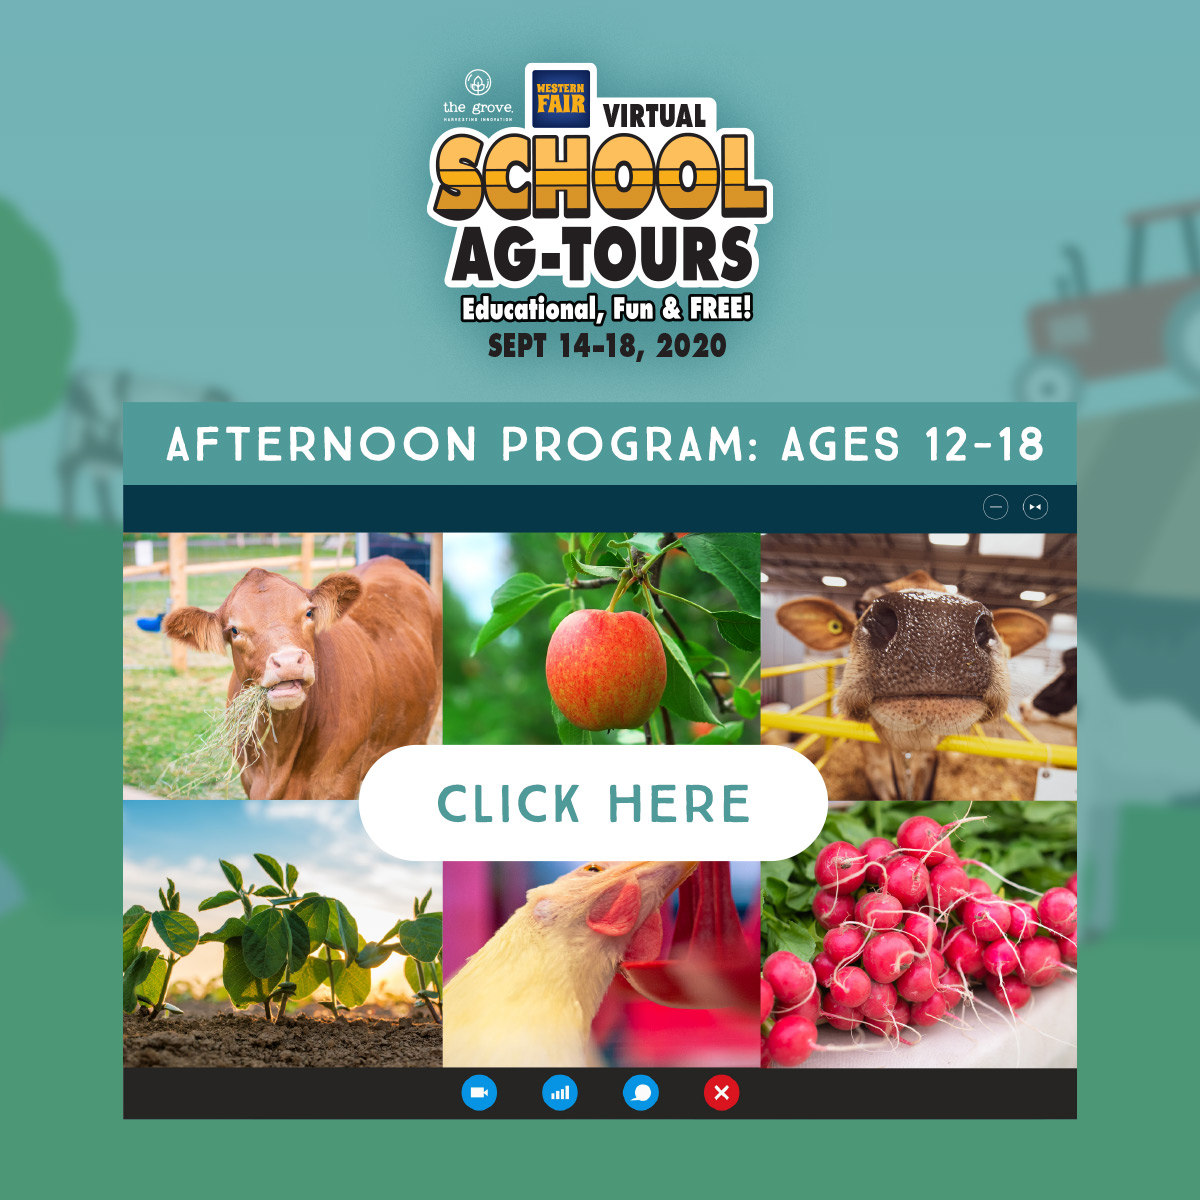 School Ag-Tours: Afternoon Program: Ages 12-18 - Click Here